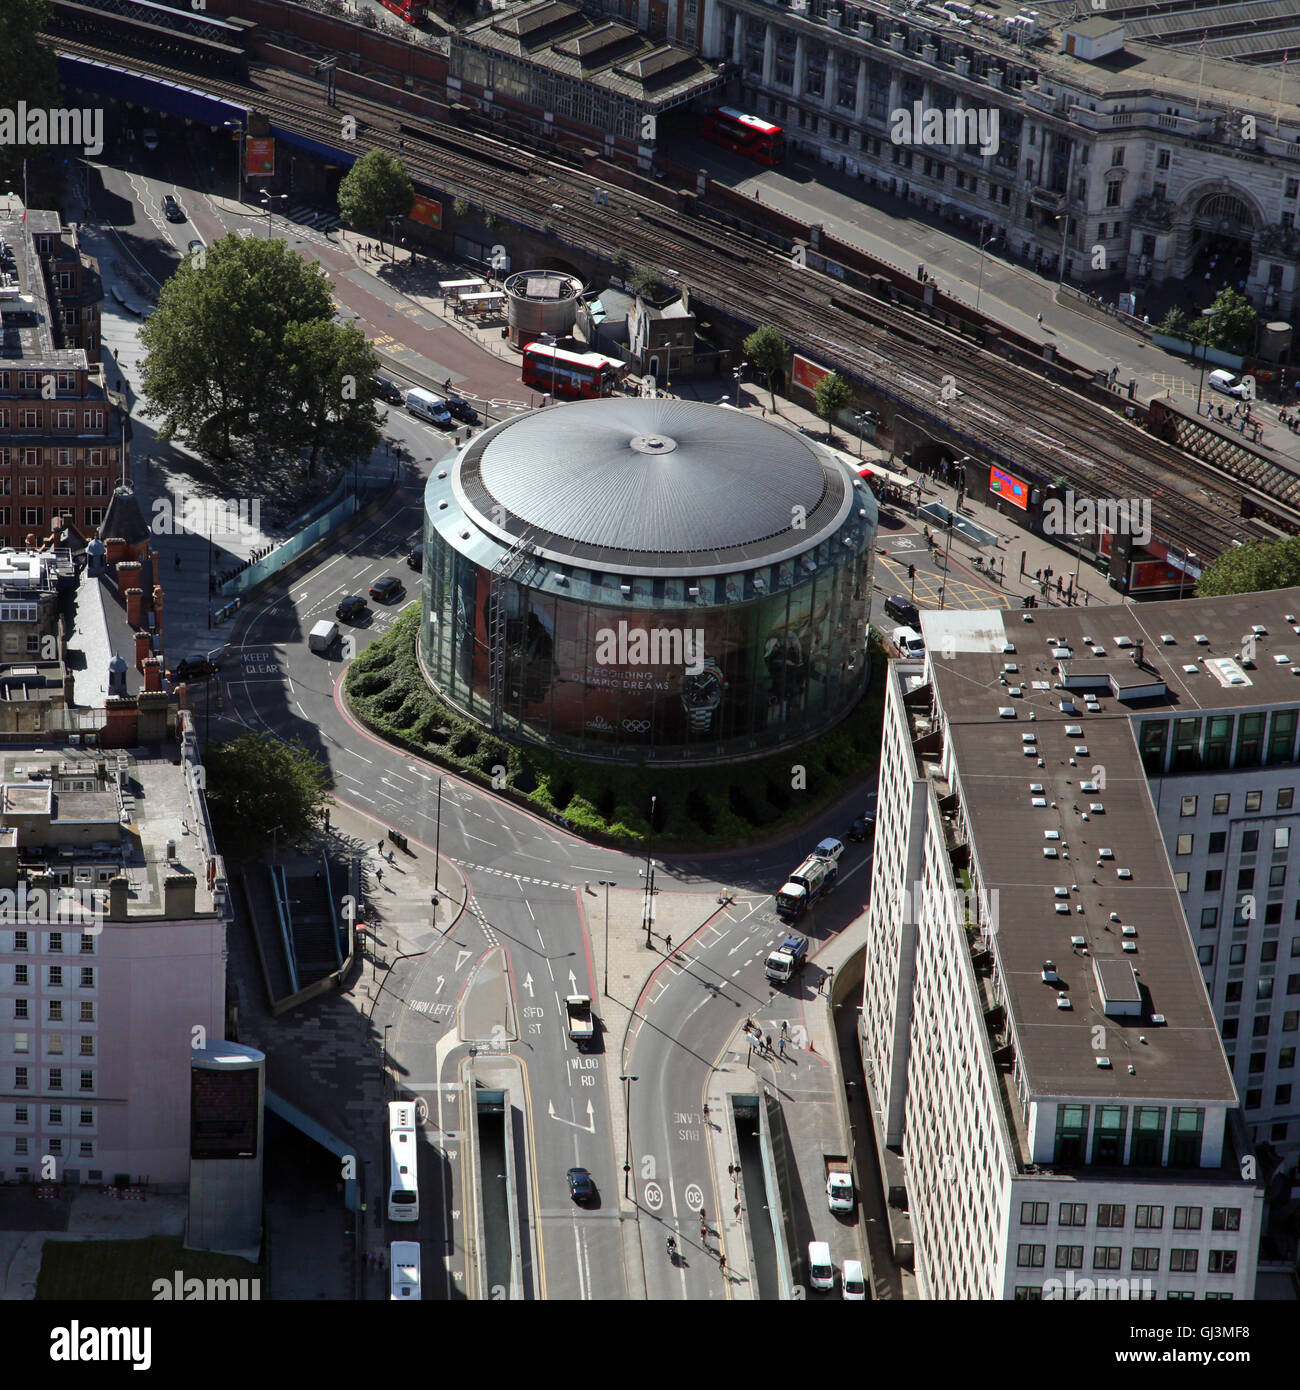 aerial view of the British Film Institute IMAX cinema on the South Bank in London, UK - Stock Image